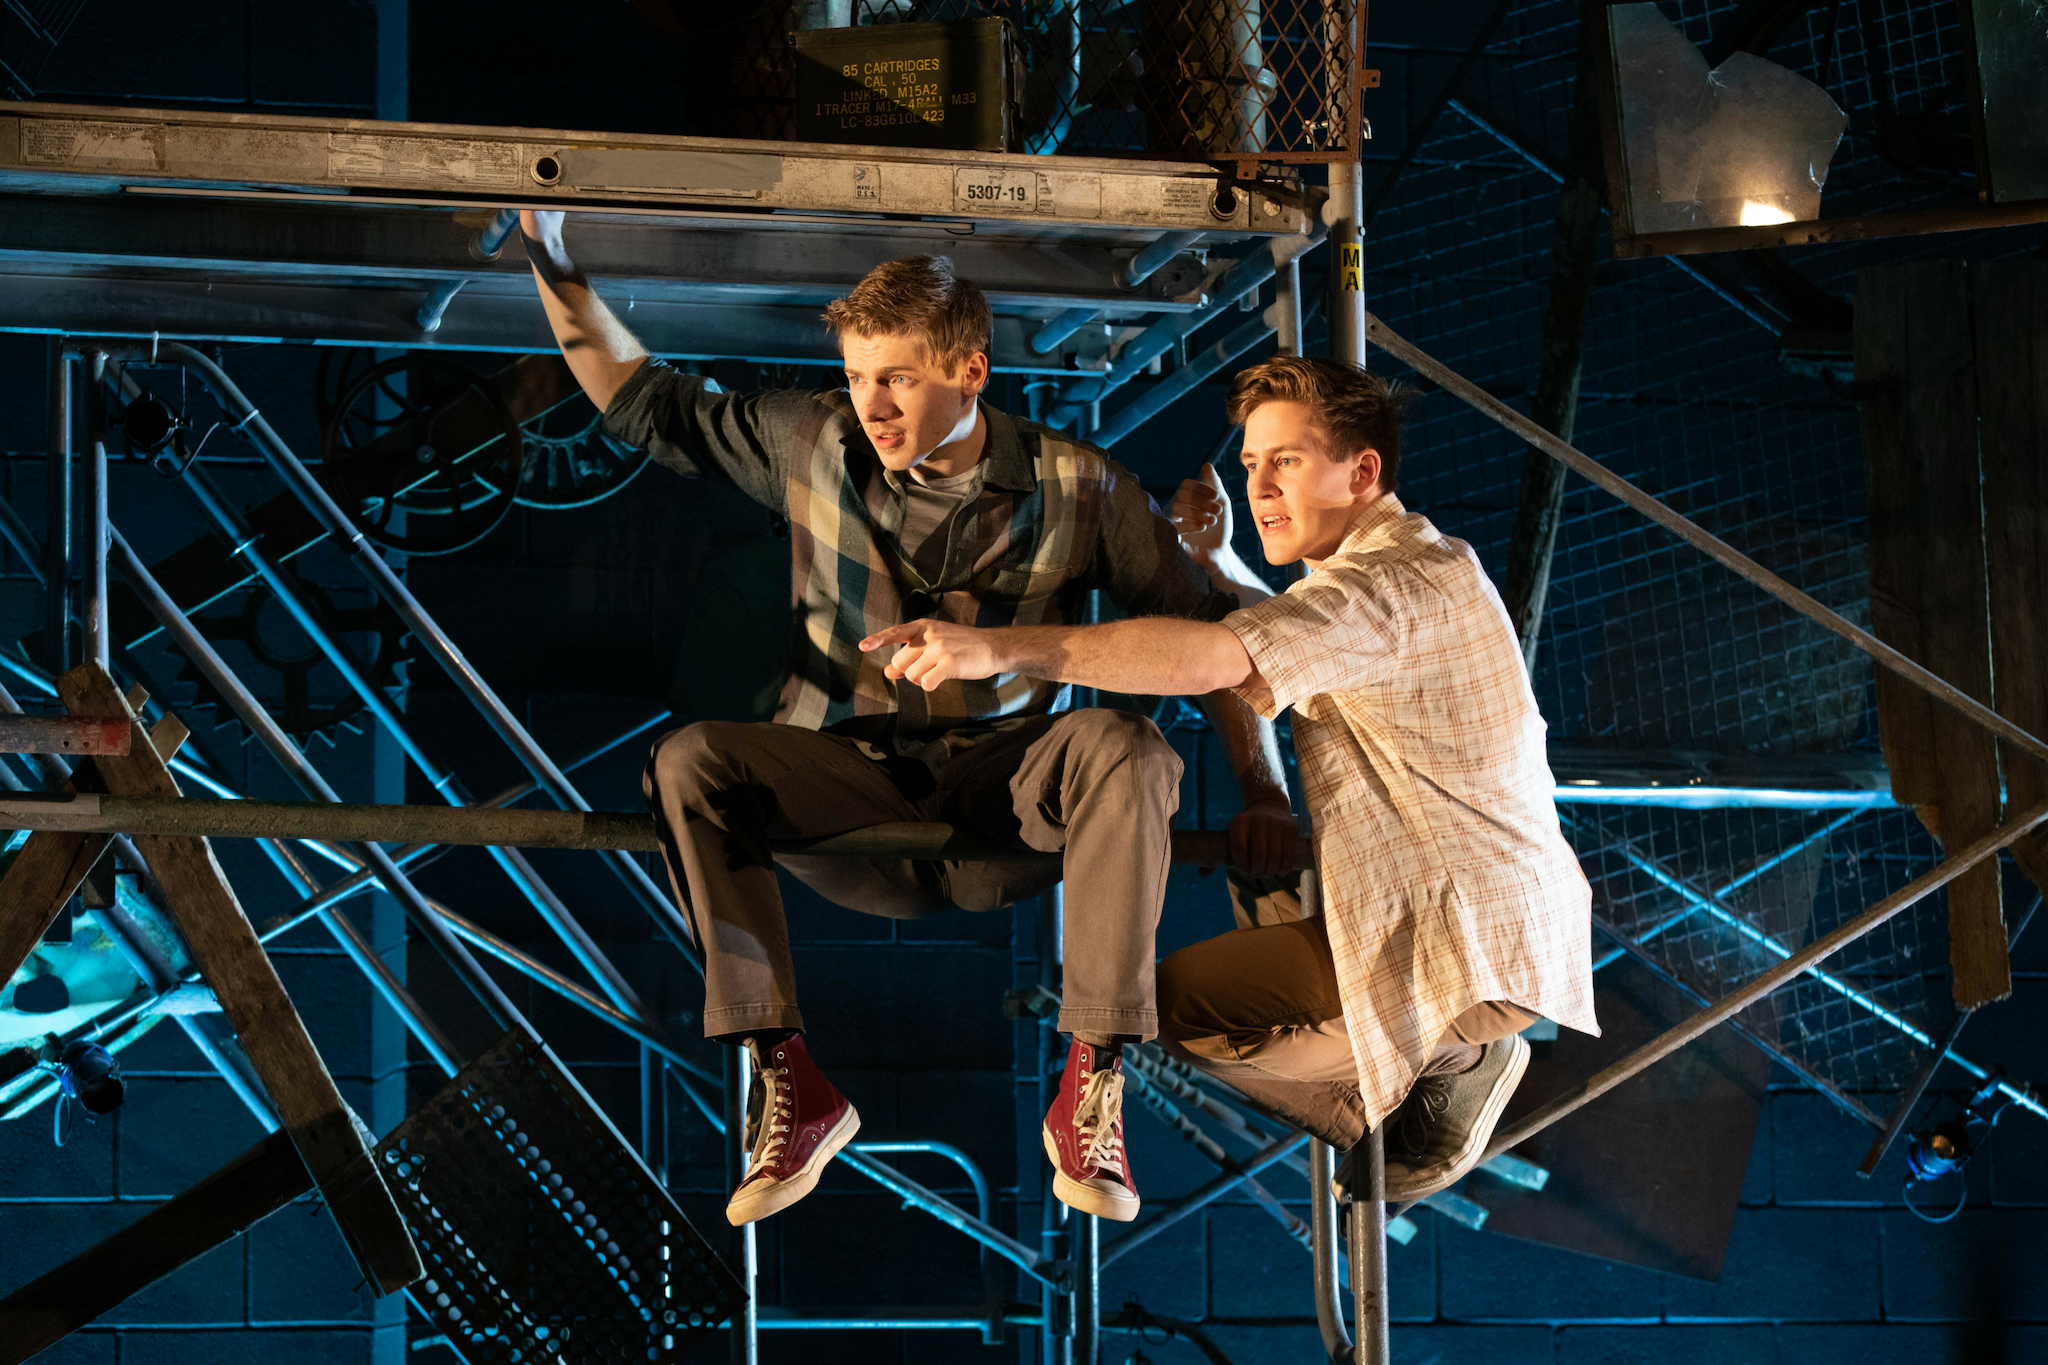 Maxim Chumov (Young Al) and Spencer Hamp (Young Birdy) in Birdy, 2019-Photo by Evgenia Eliseeva